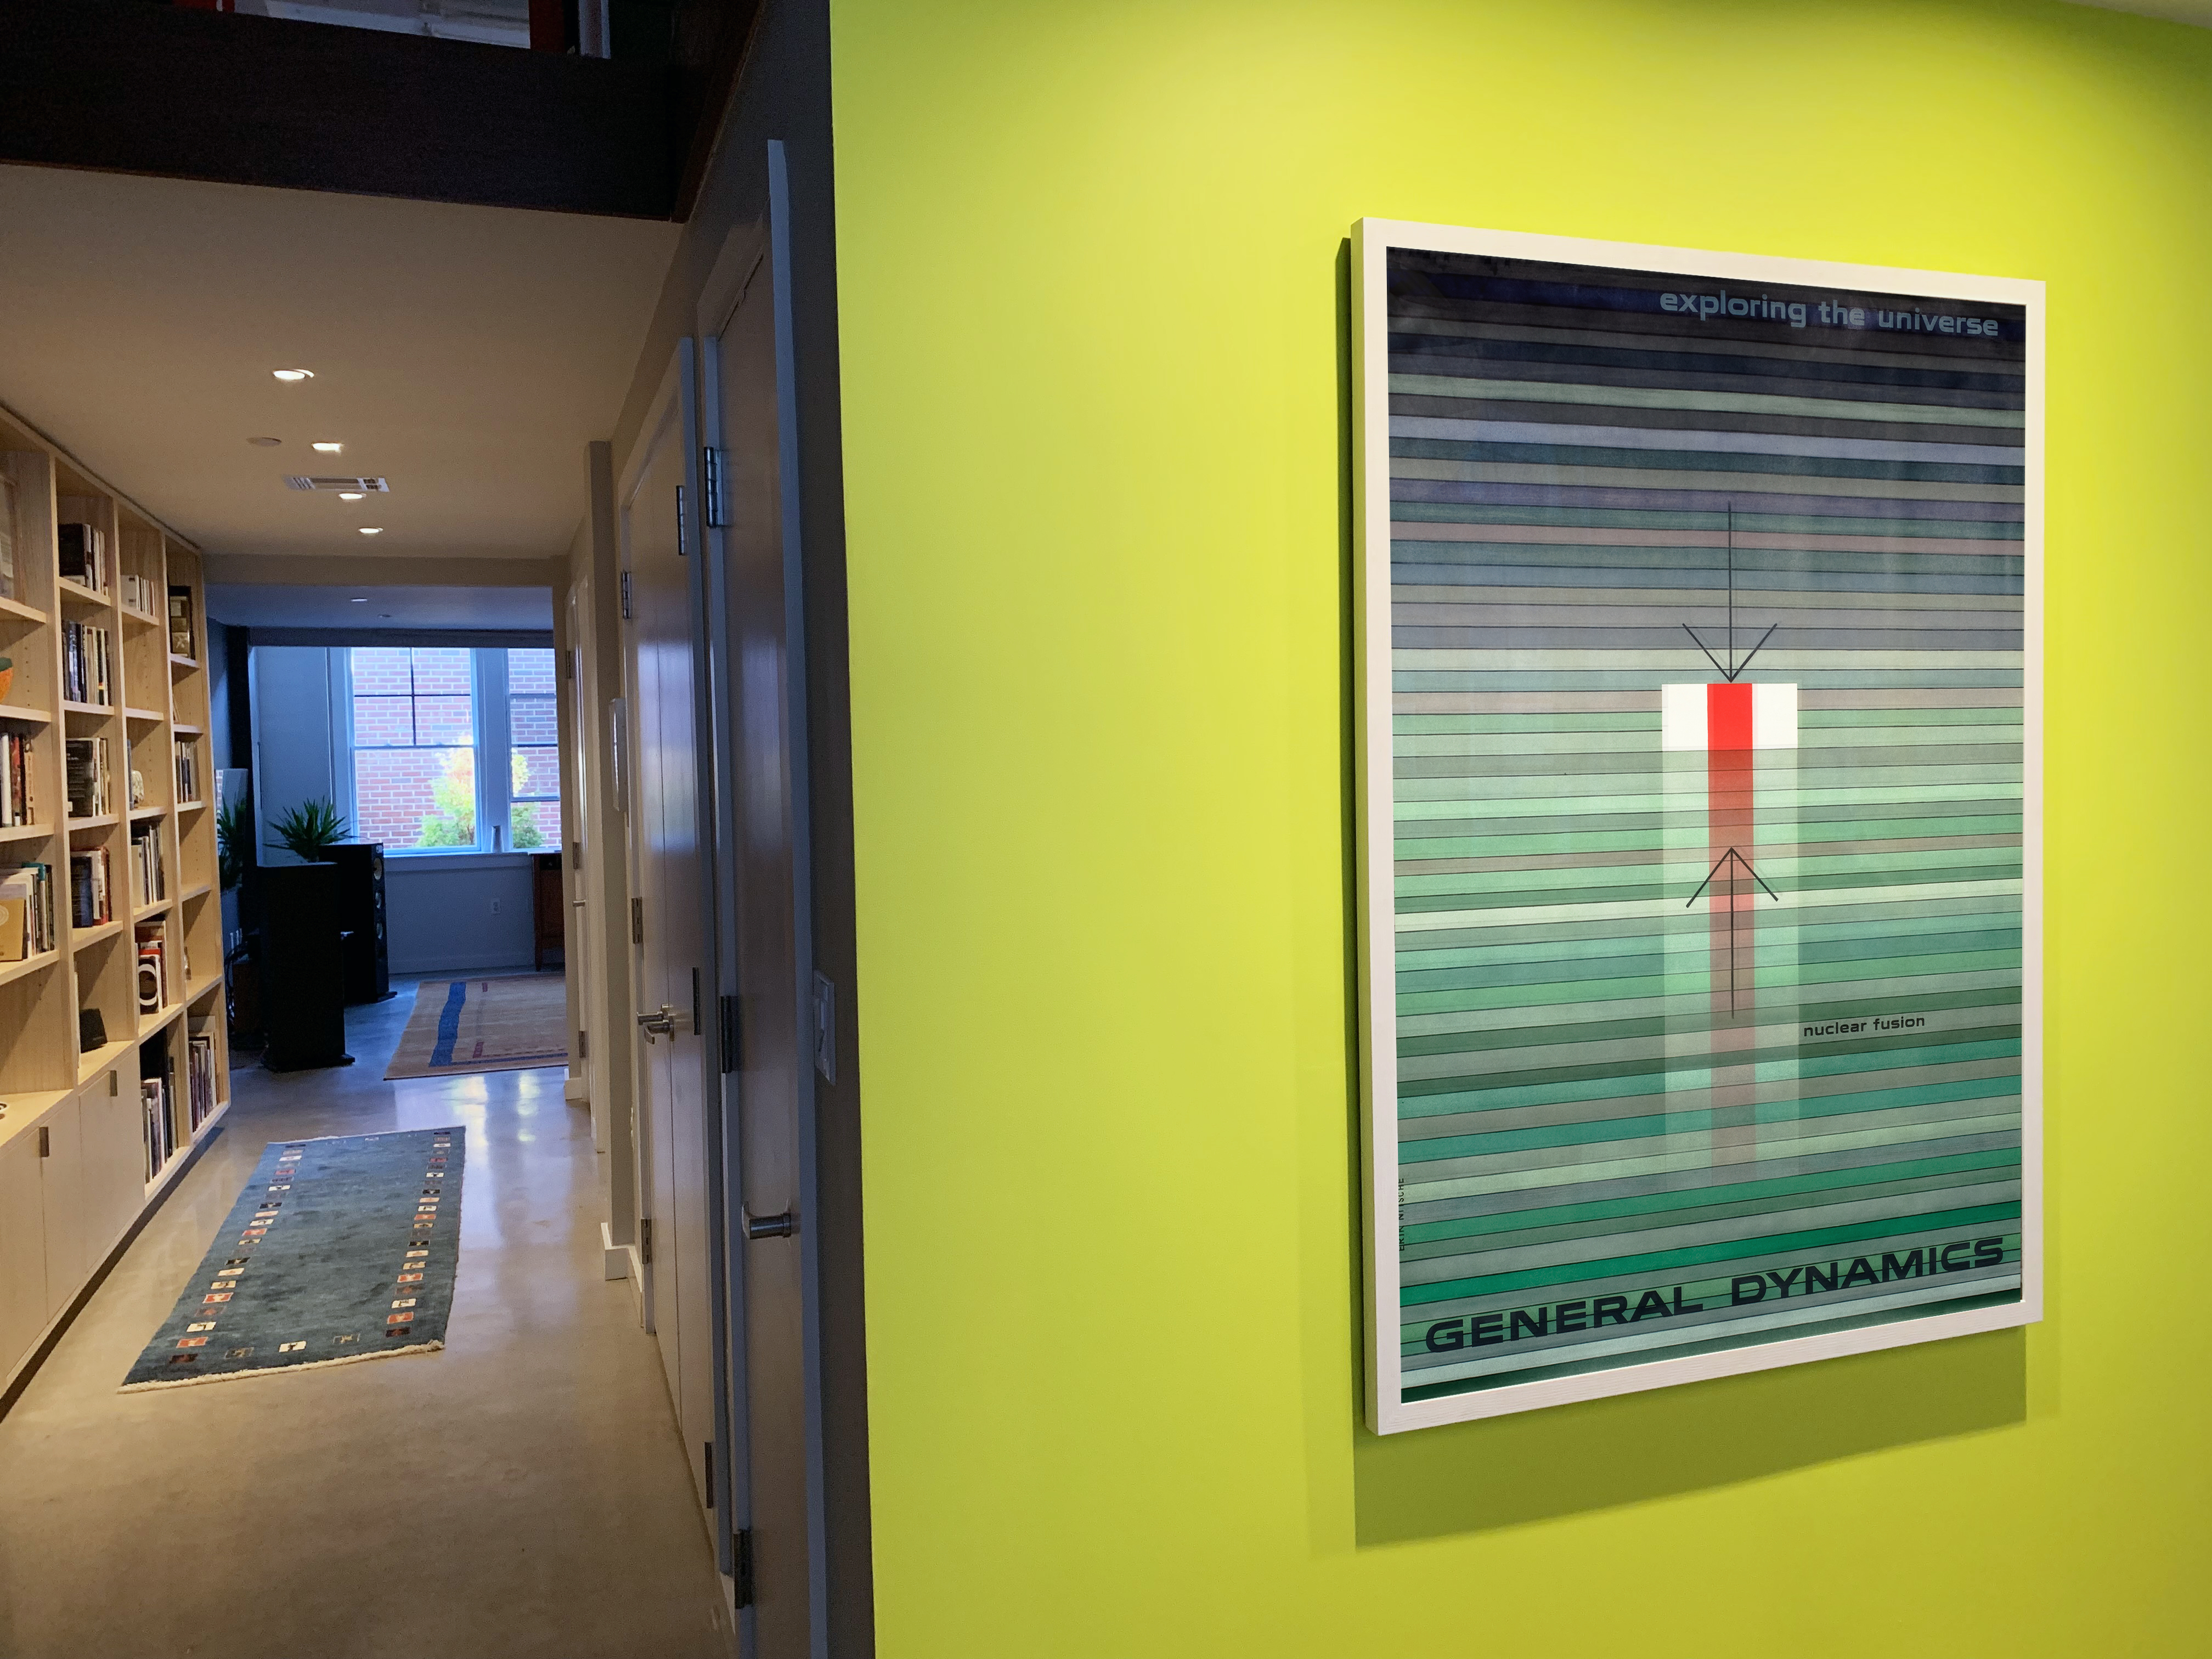 hallway with accent wall and General Dynamics poster; green, red, orange